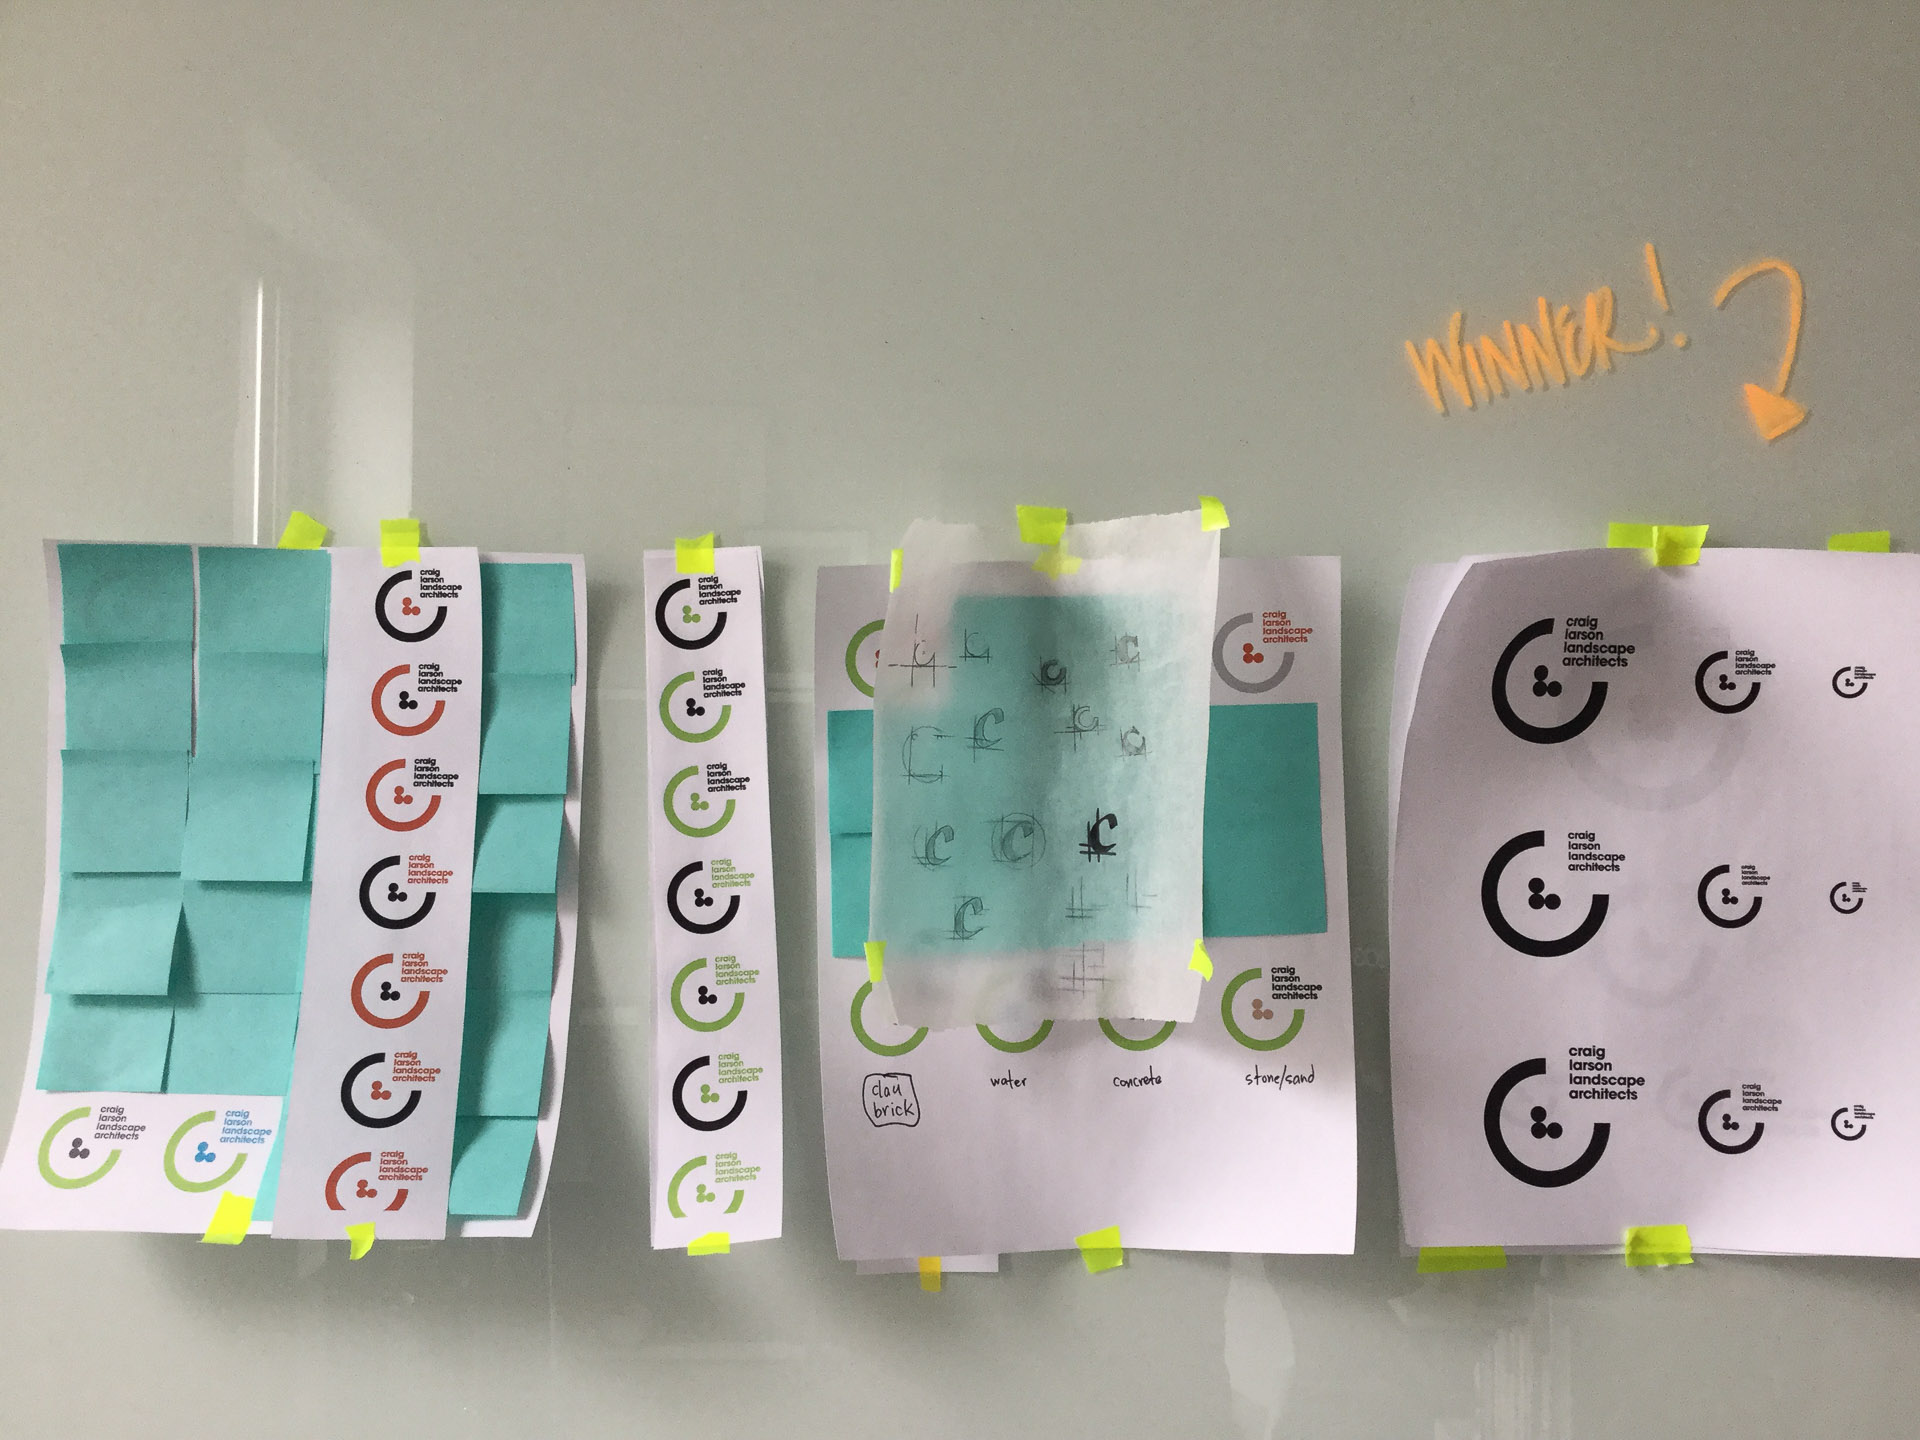 Logo concepts printed on letter paper and taped to a white board with blue post-its stuck on the papers